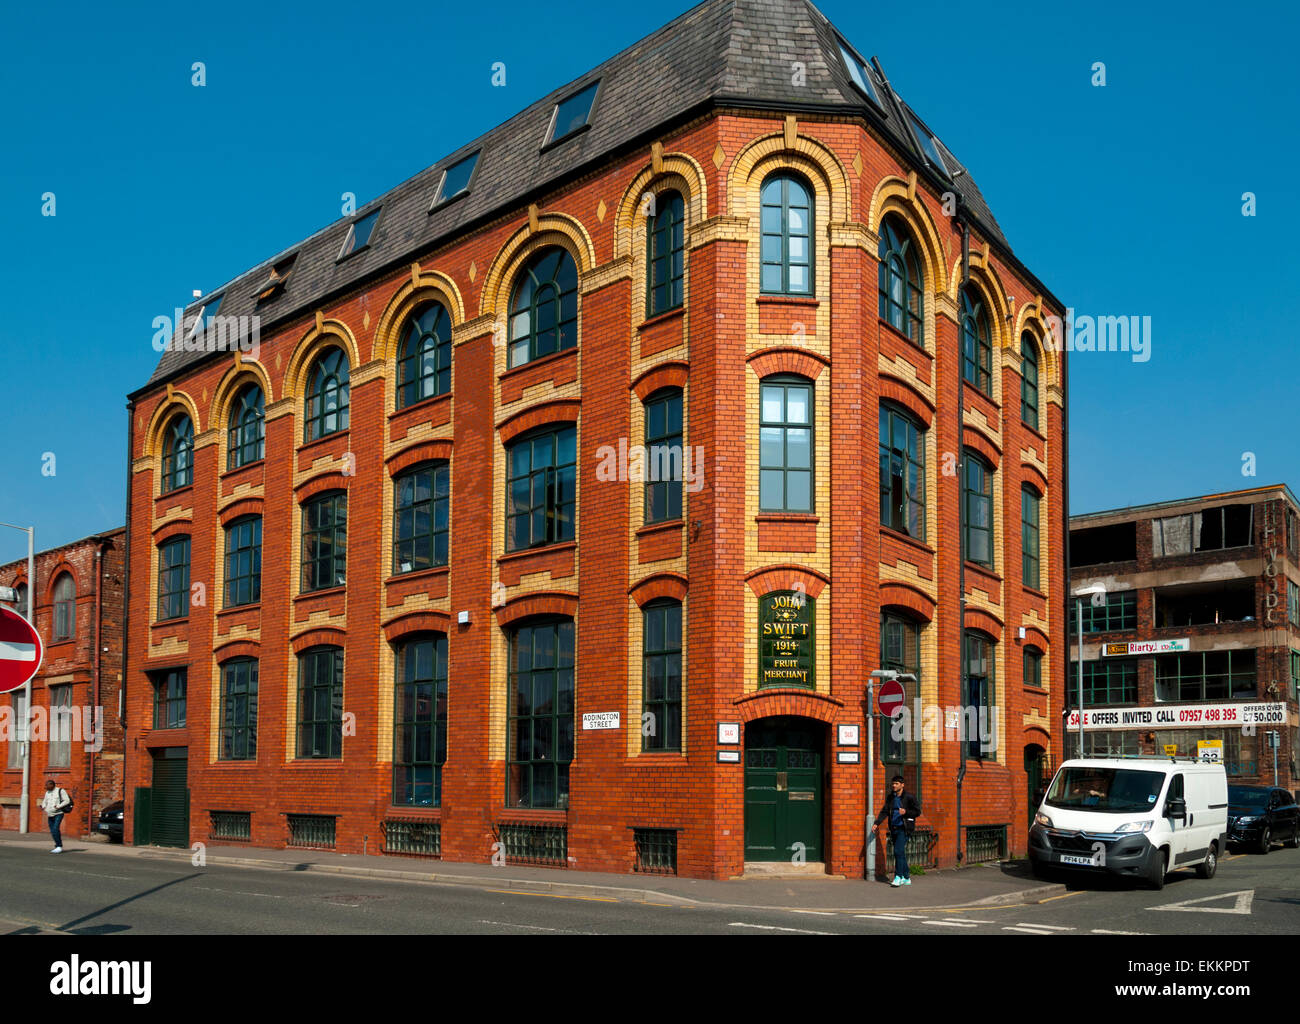 The John Swift building (1914), a former fruit merchant's warehouse (now offices), Northern Quarter, Manchester, - Stock Image